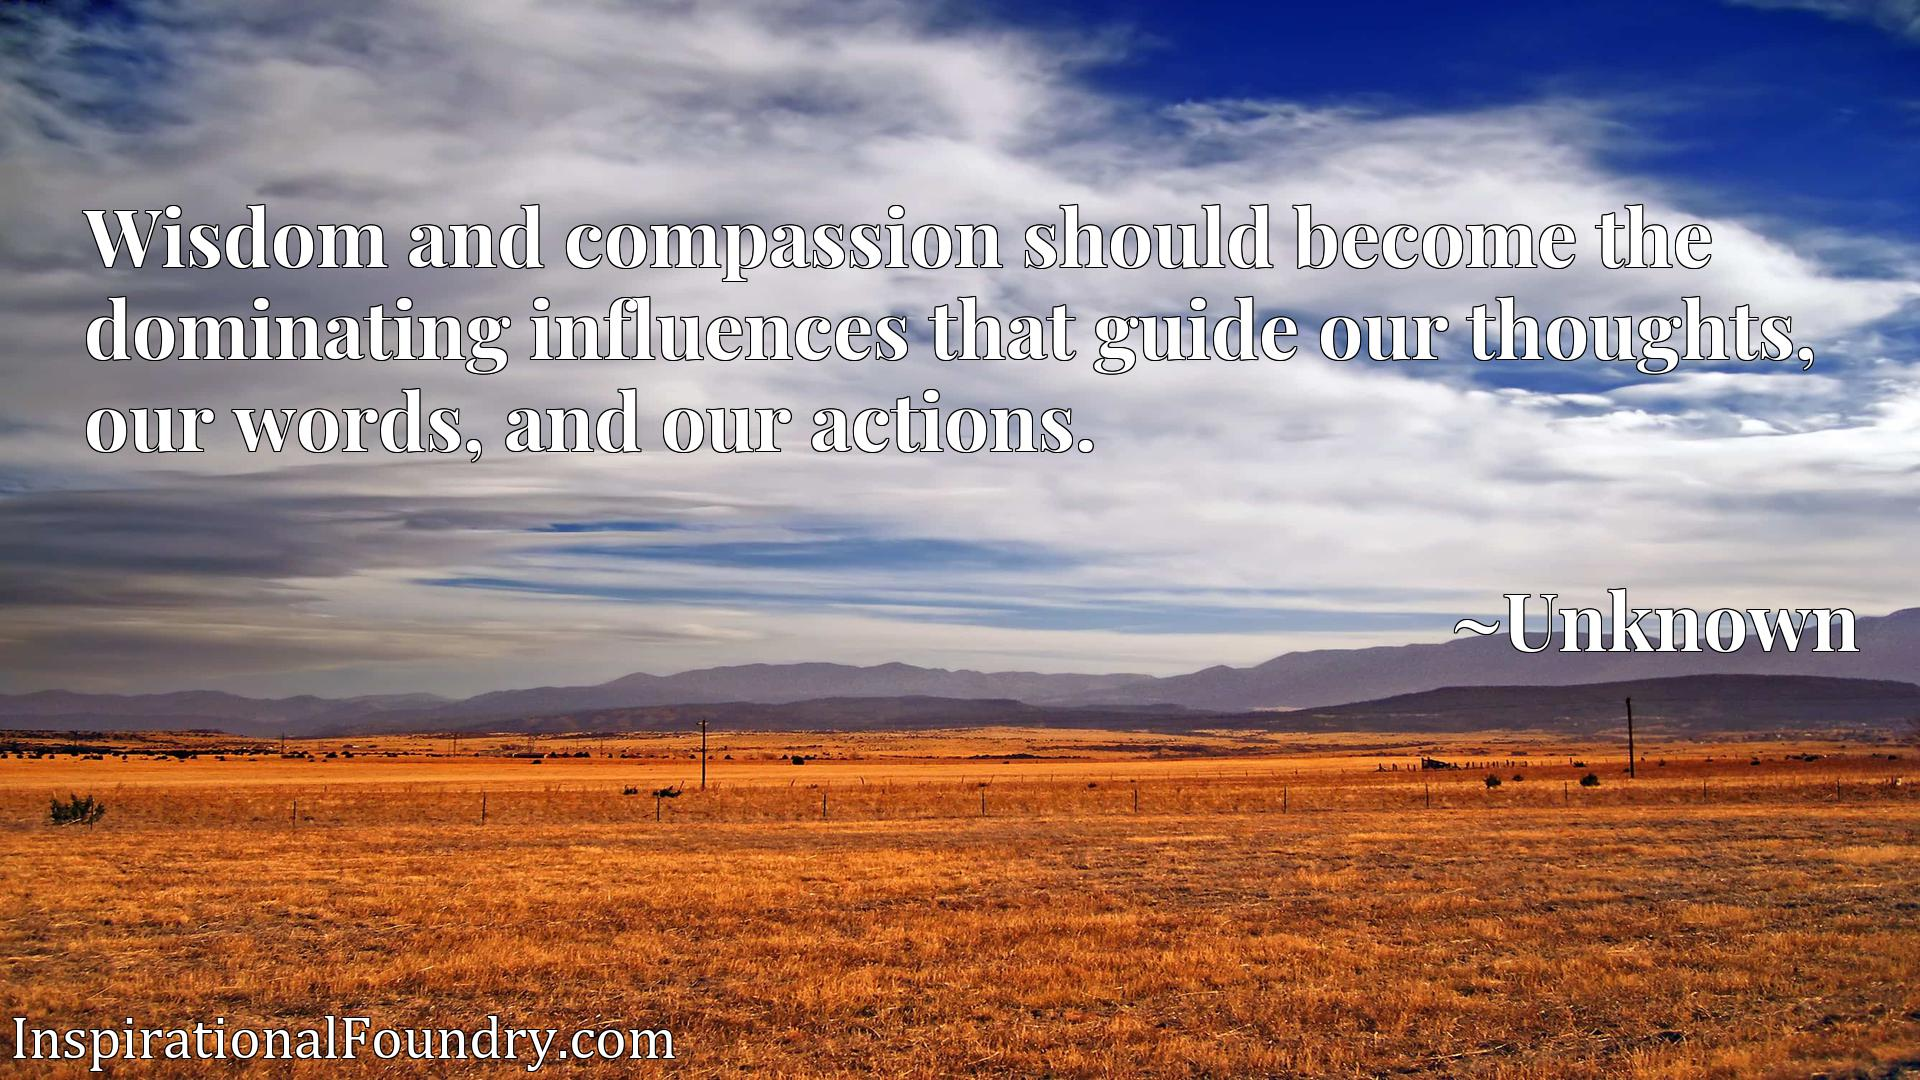 Wisdom and compassion should become the dominating influences that guide our thoughts, our words, and our actions.